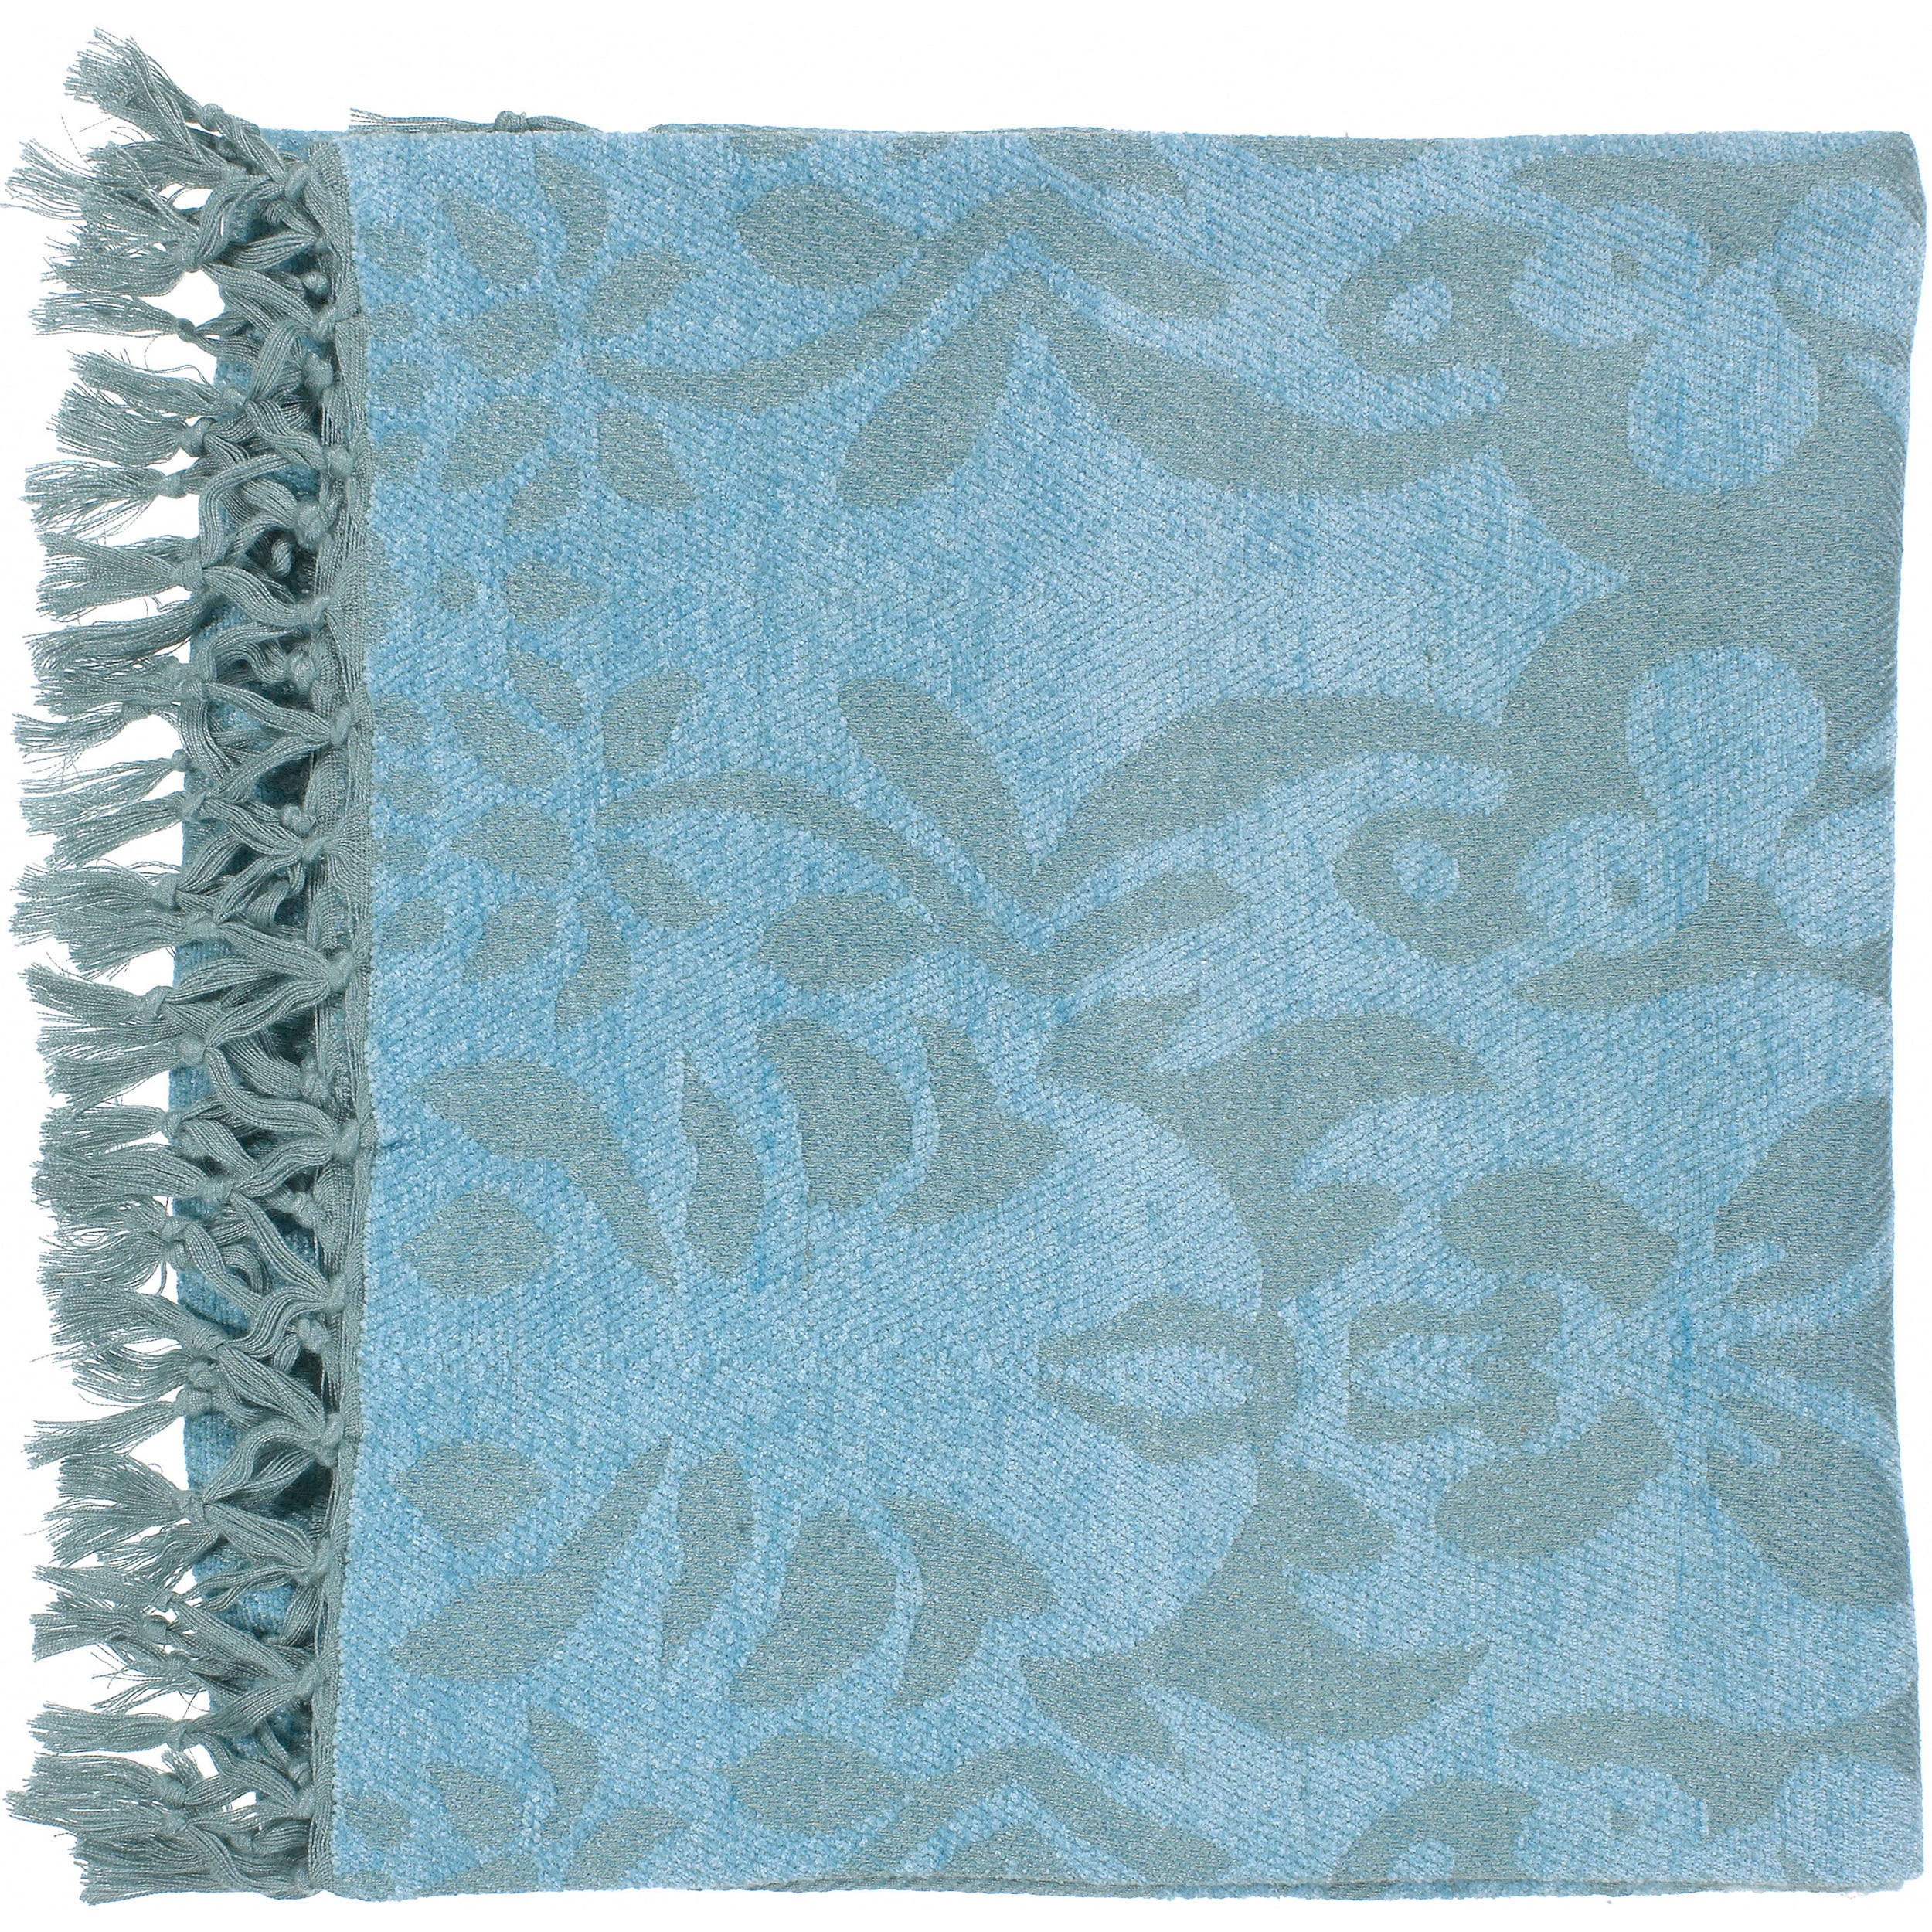 Woven Rochester Viscose Throw Blanket